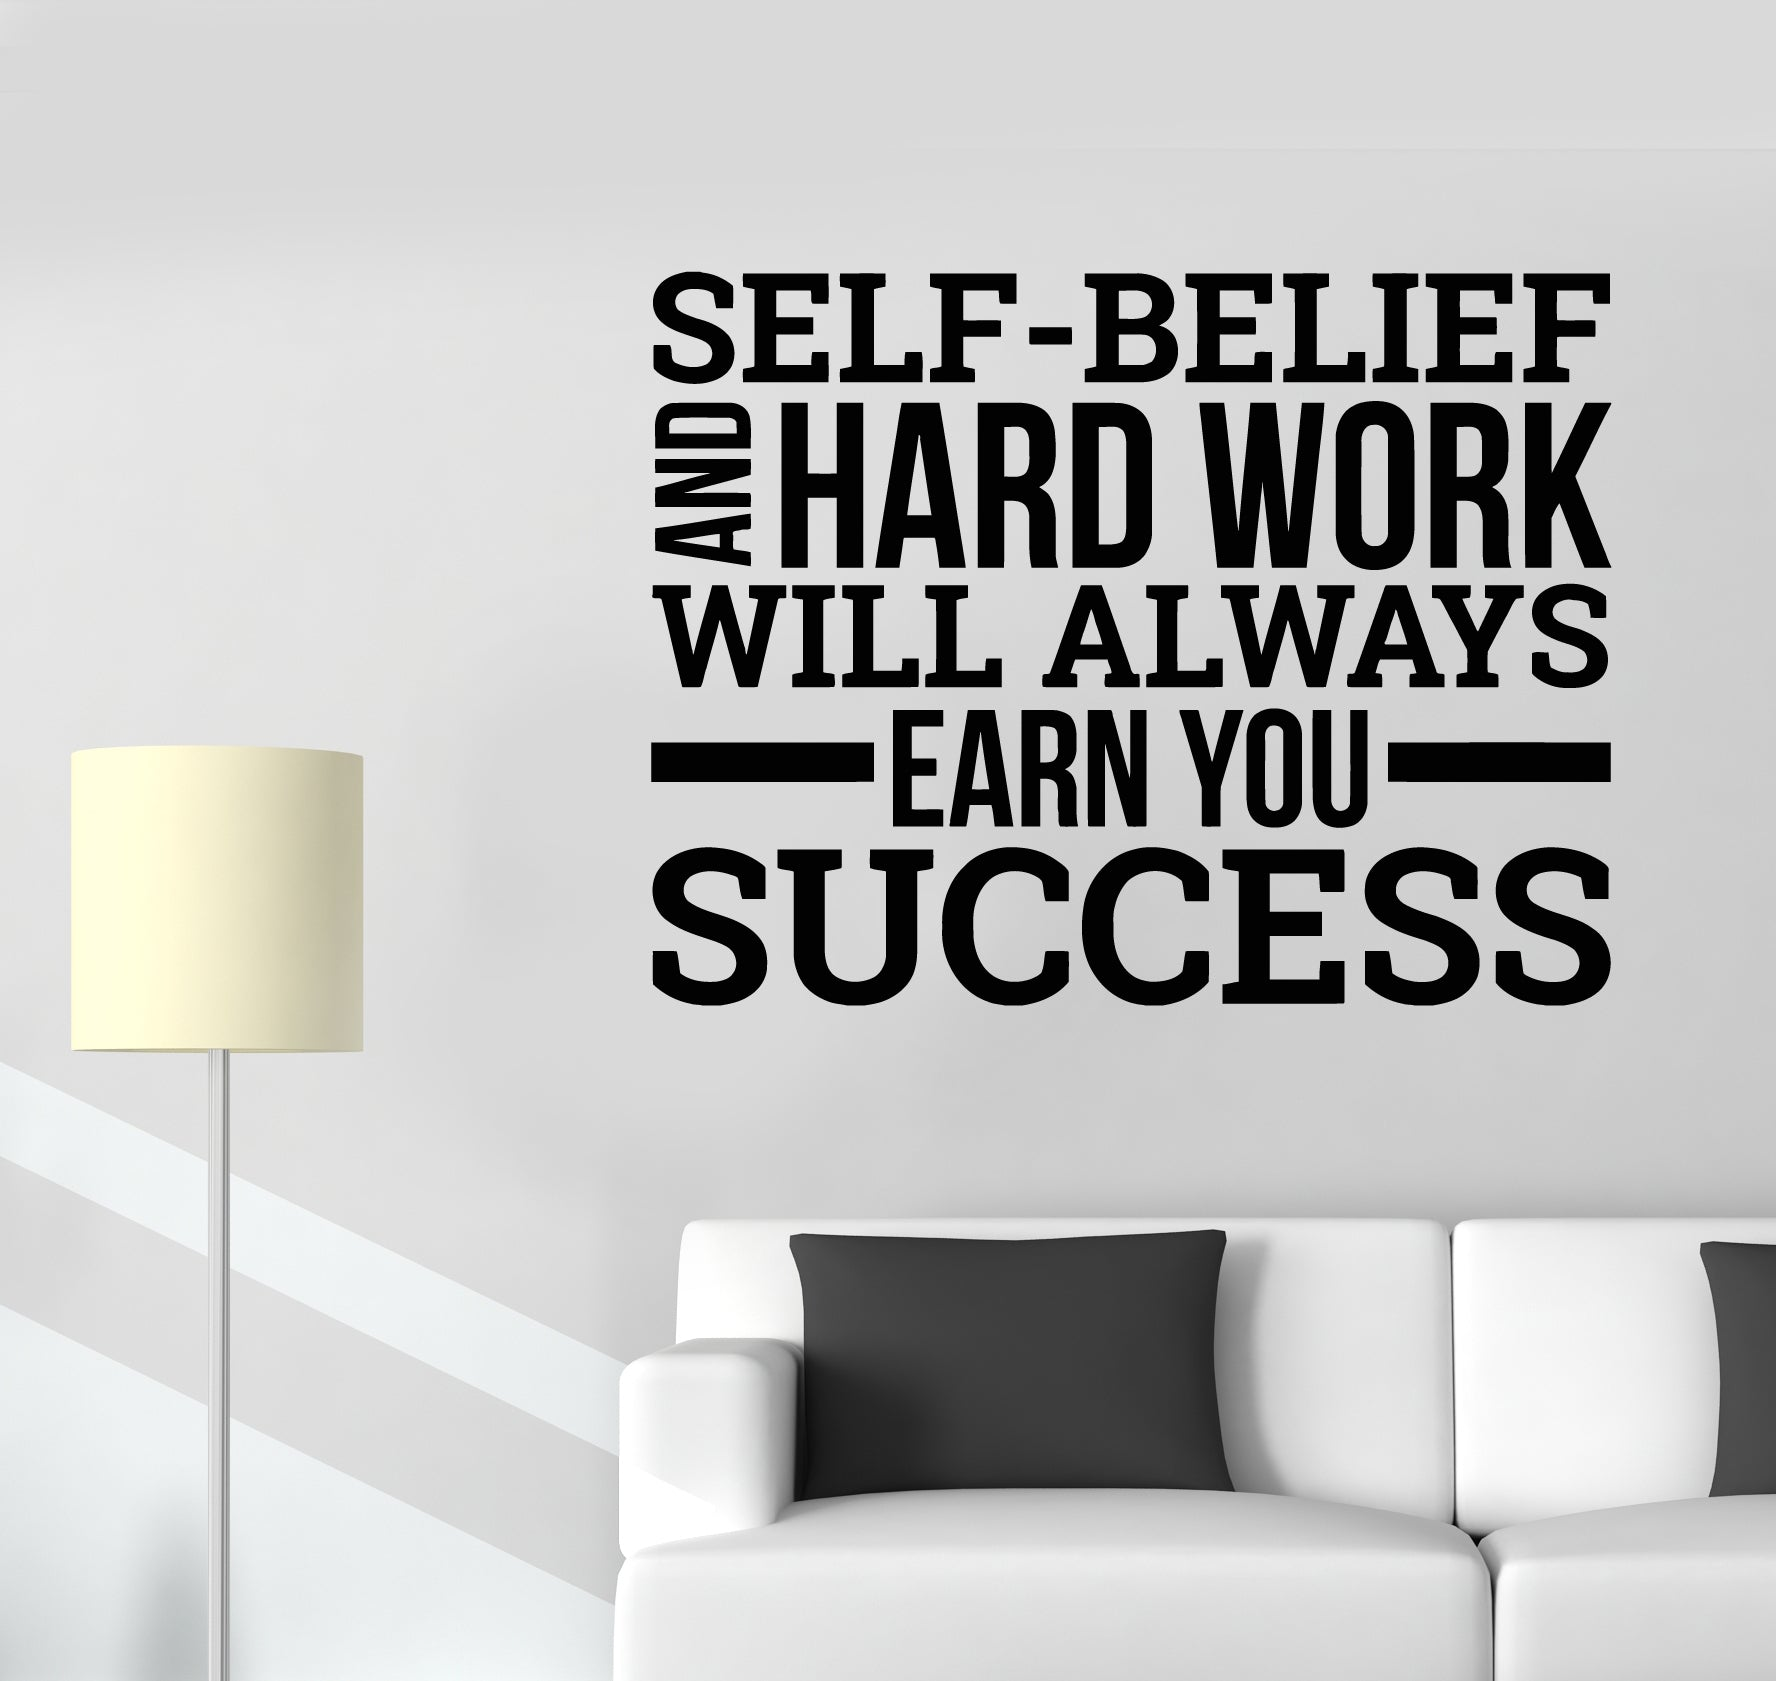 Vinyl Wall Decal Workplace Office Motivational Quote Success Hard Work Wallstickers4you